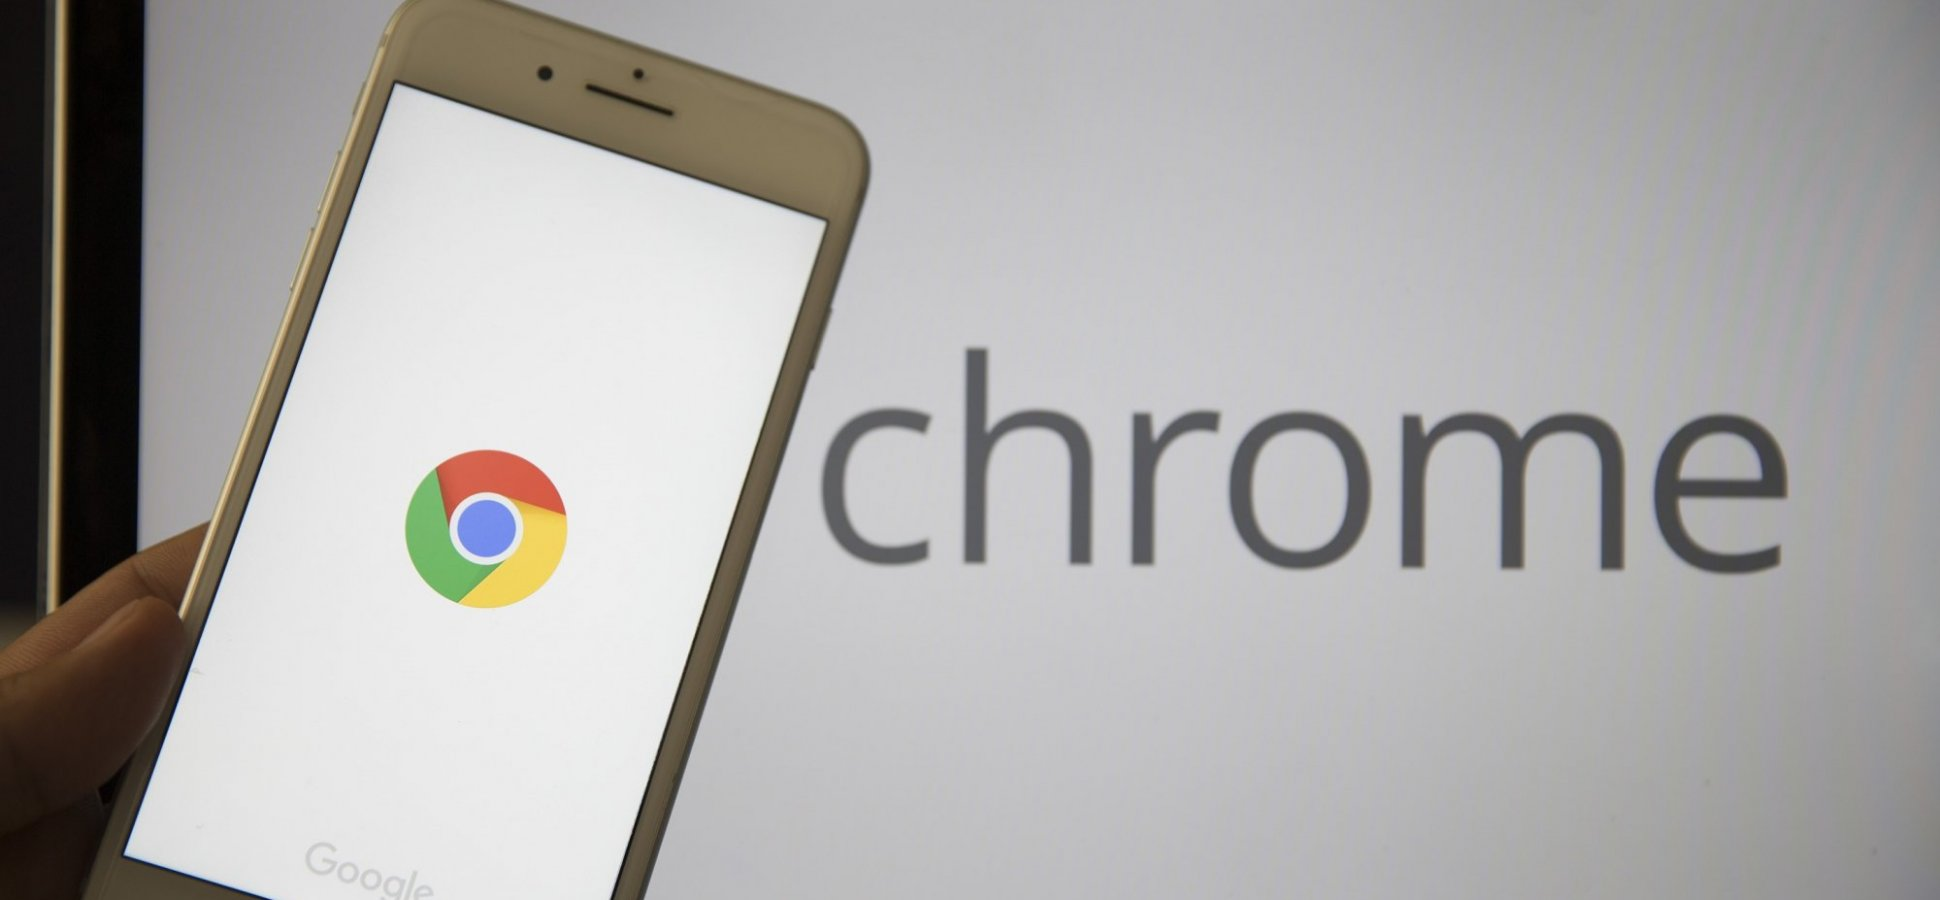 Google Says Chrome Will End Support for Third-Party Cookies That Track You. That's Not All Good News